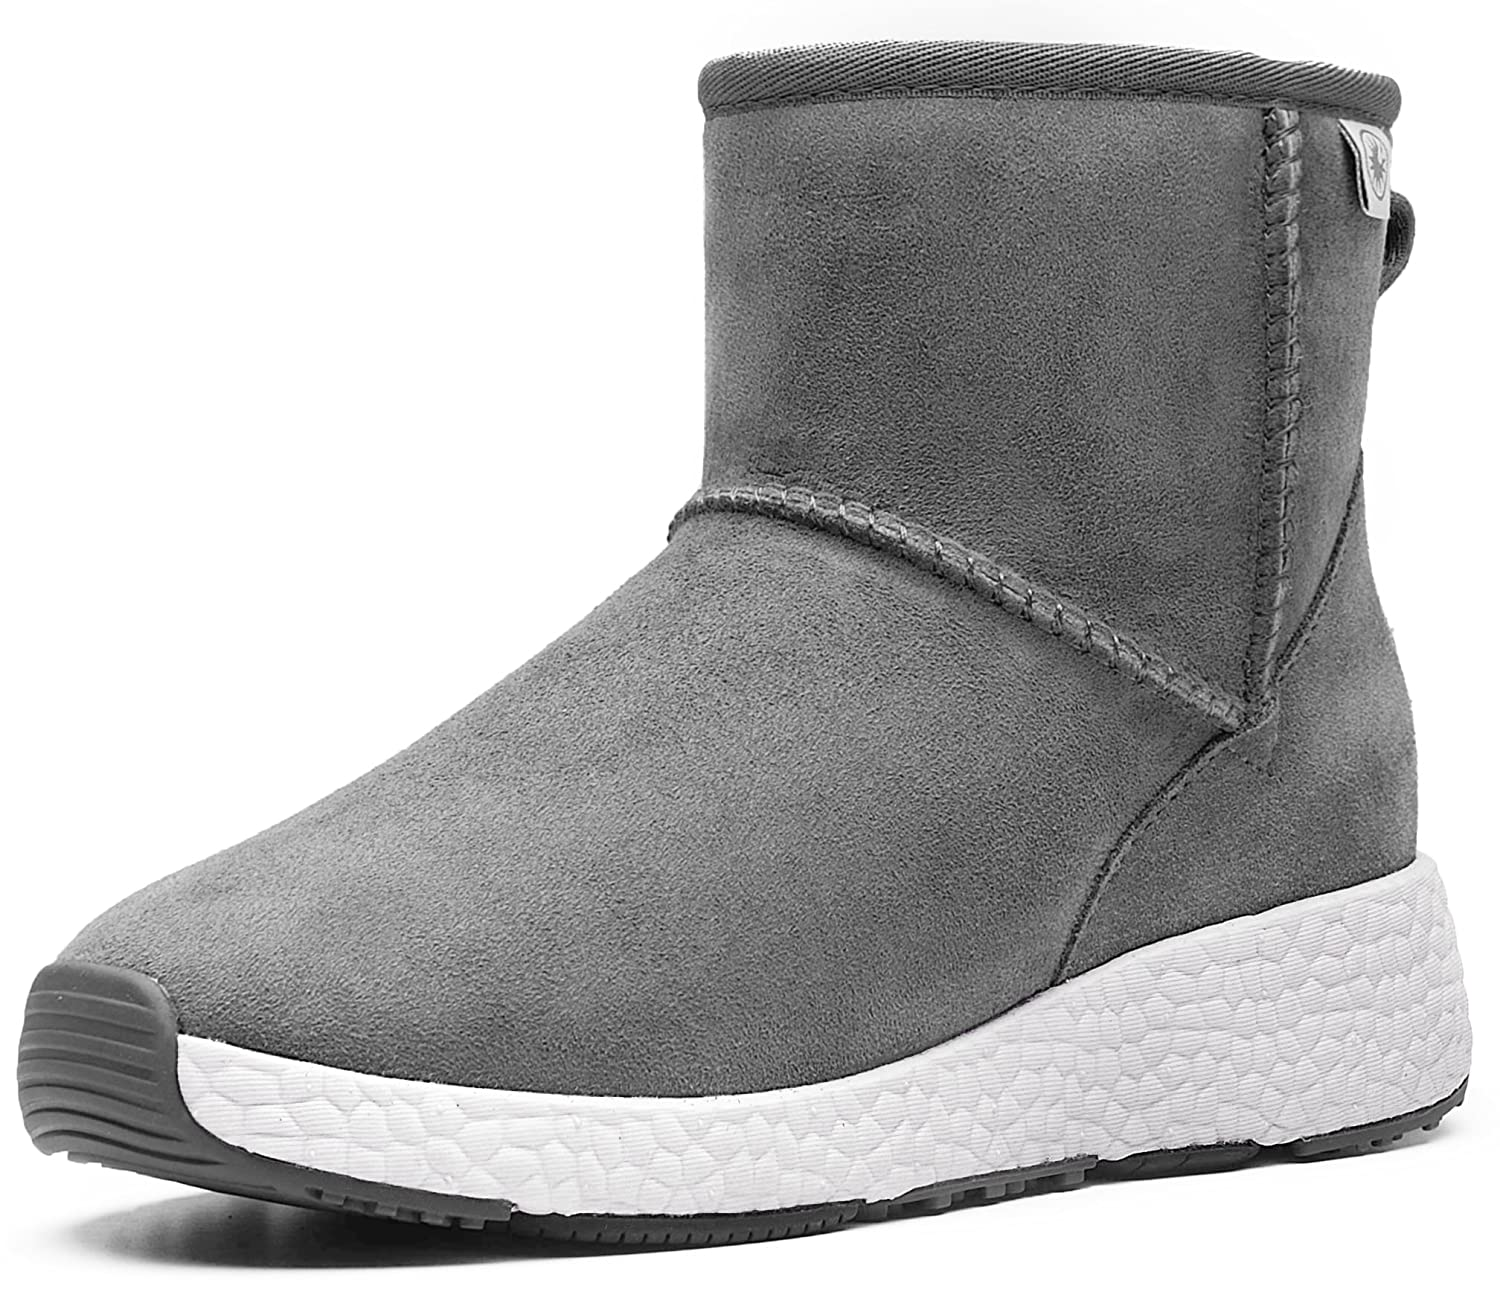 AU&MU Women's Full Fur Sheepskin Suede Winter Snow Boots B074Z12JDZ 4.5 B(M) US|Grey 5